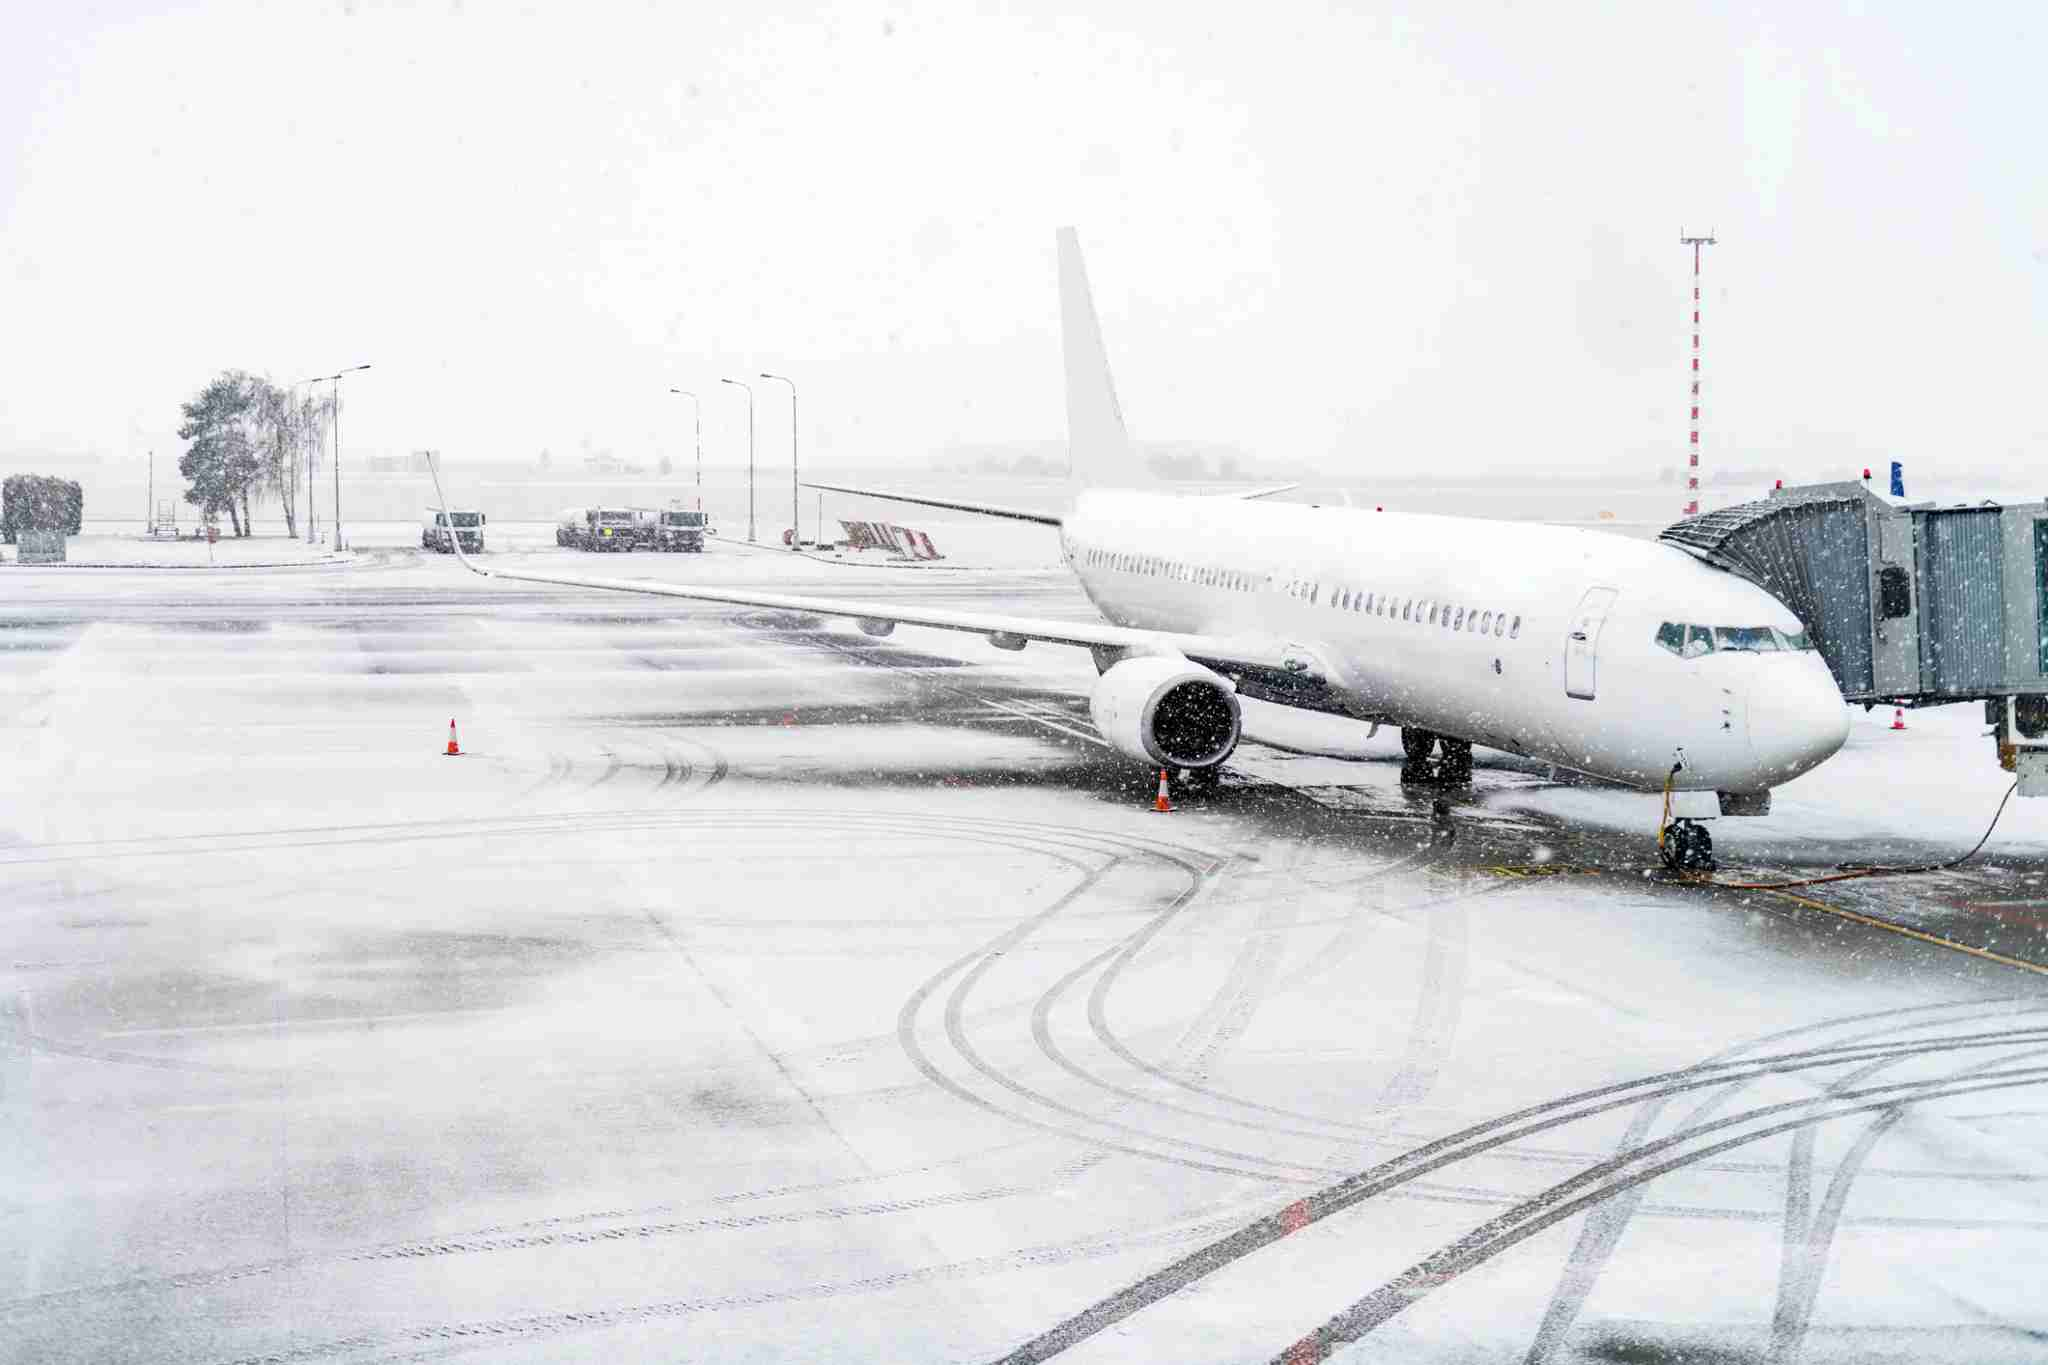 Horizontal color image of airplane during snowstorm.